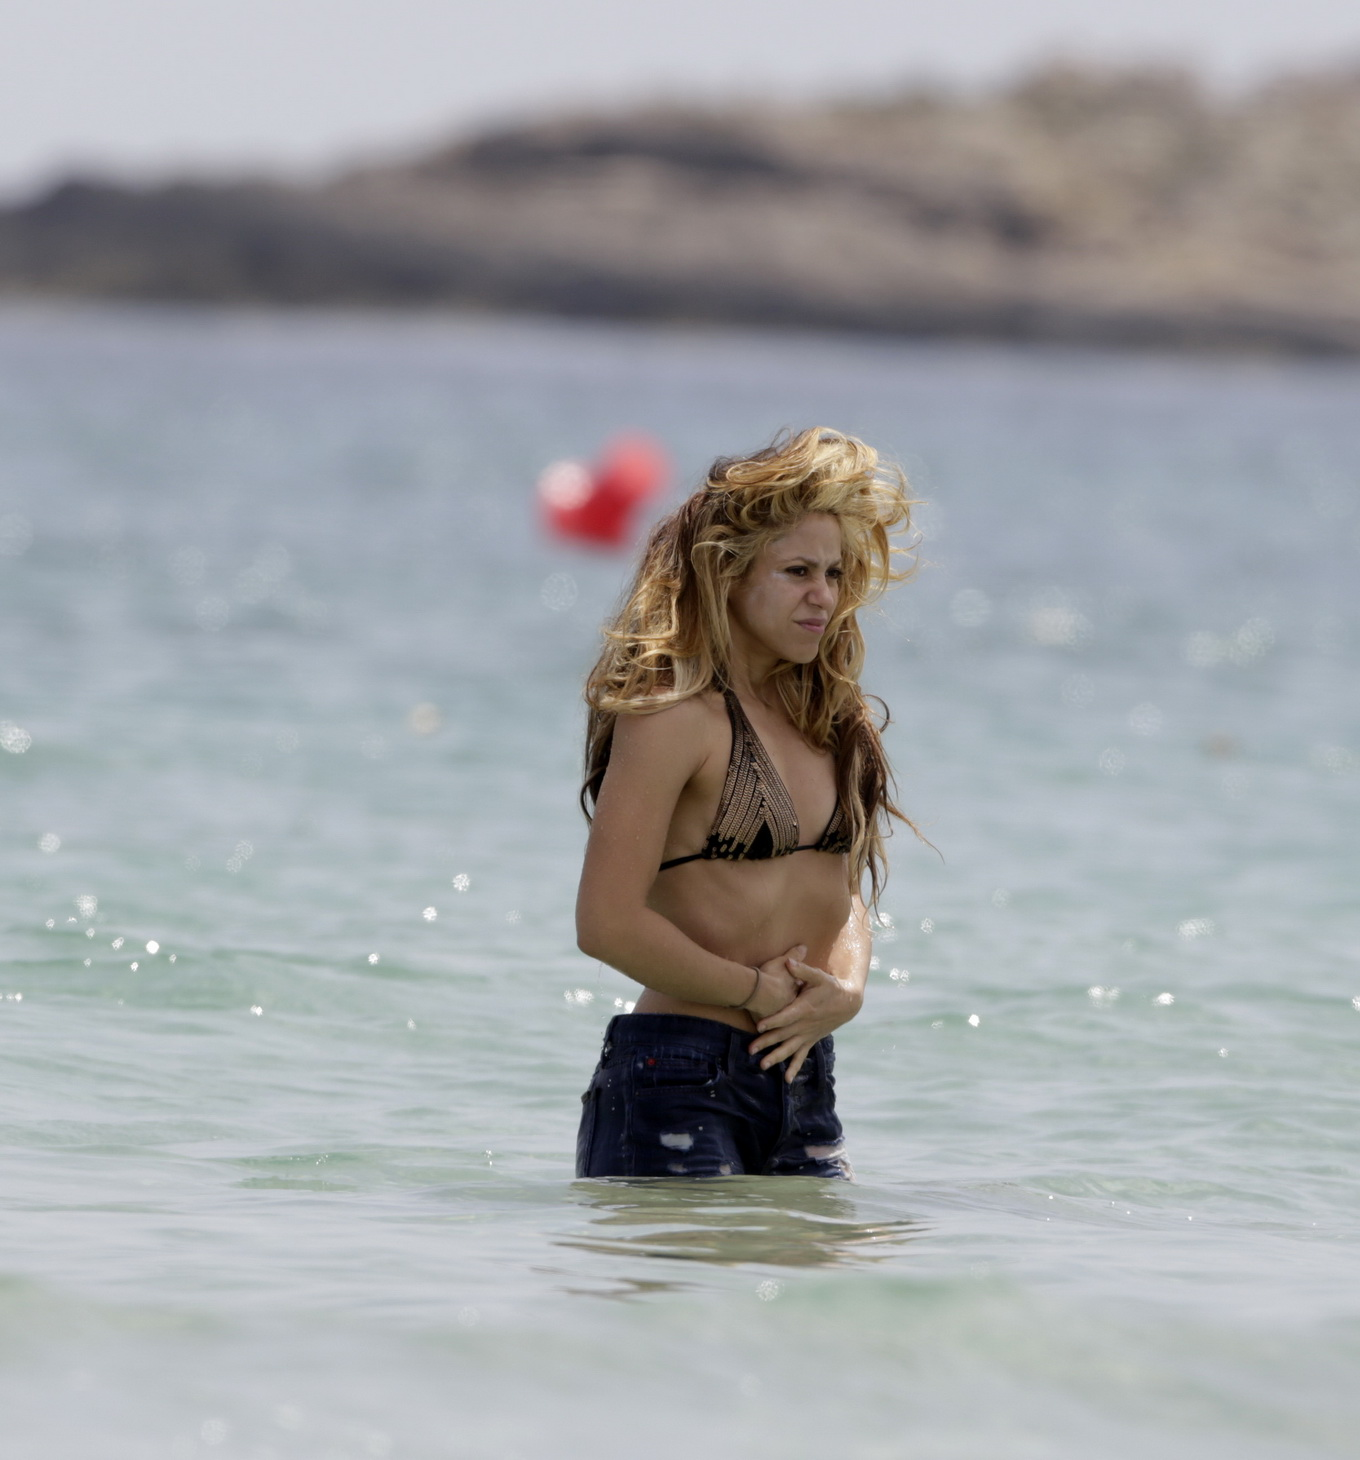 shakira showing off her hot bikini body at the beach in i a